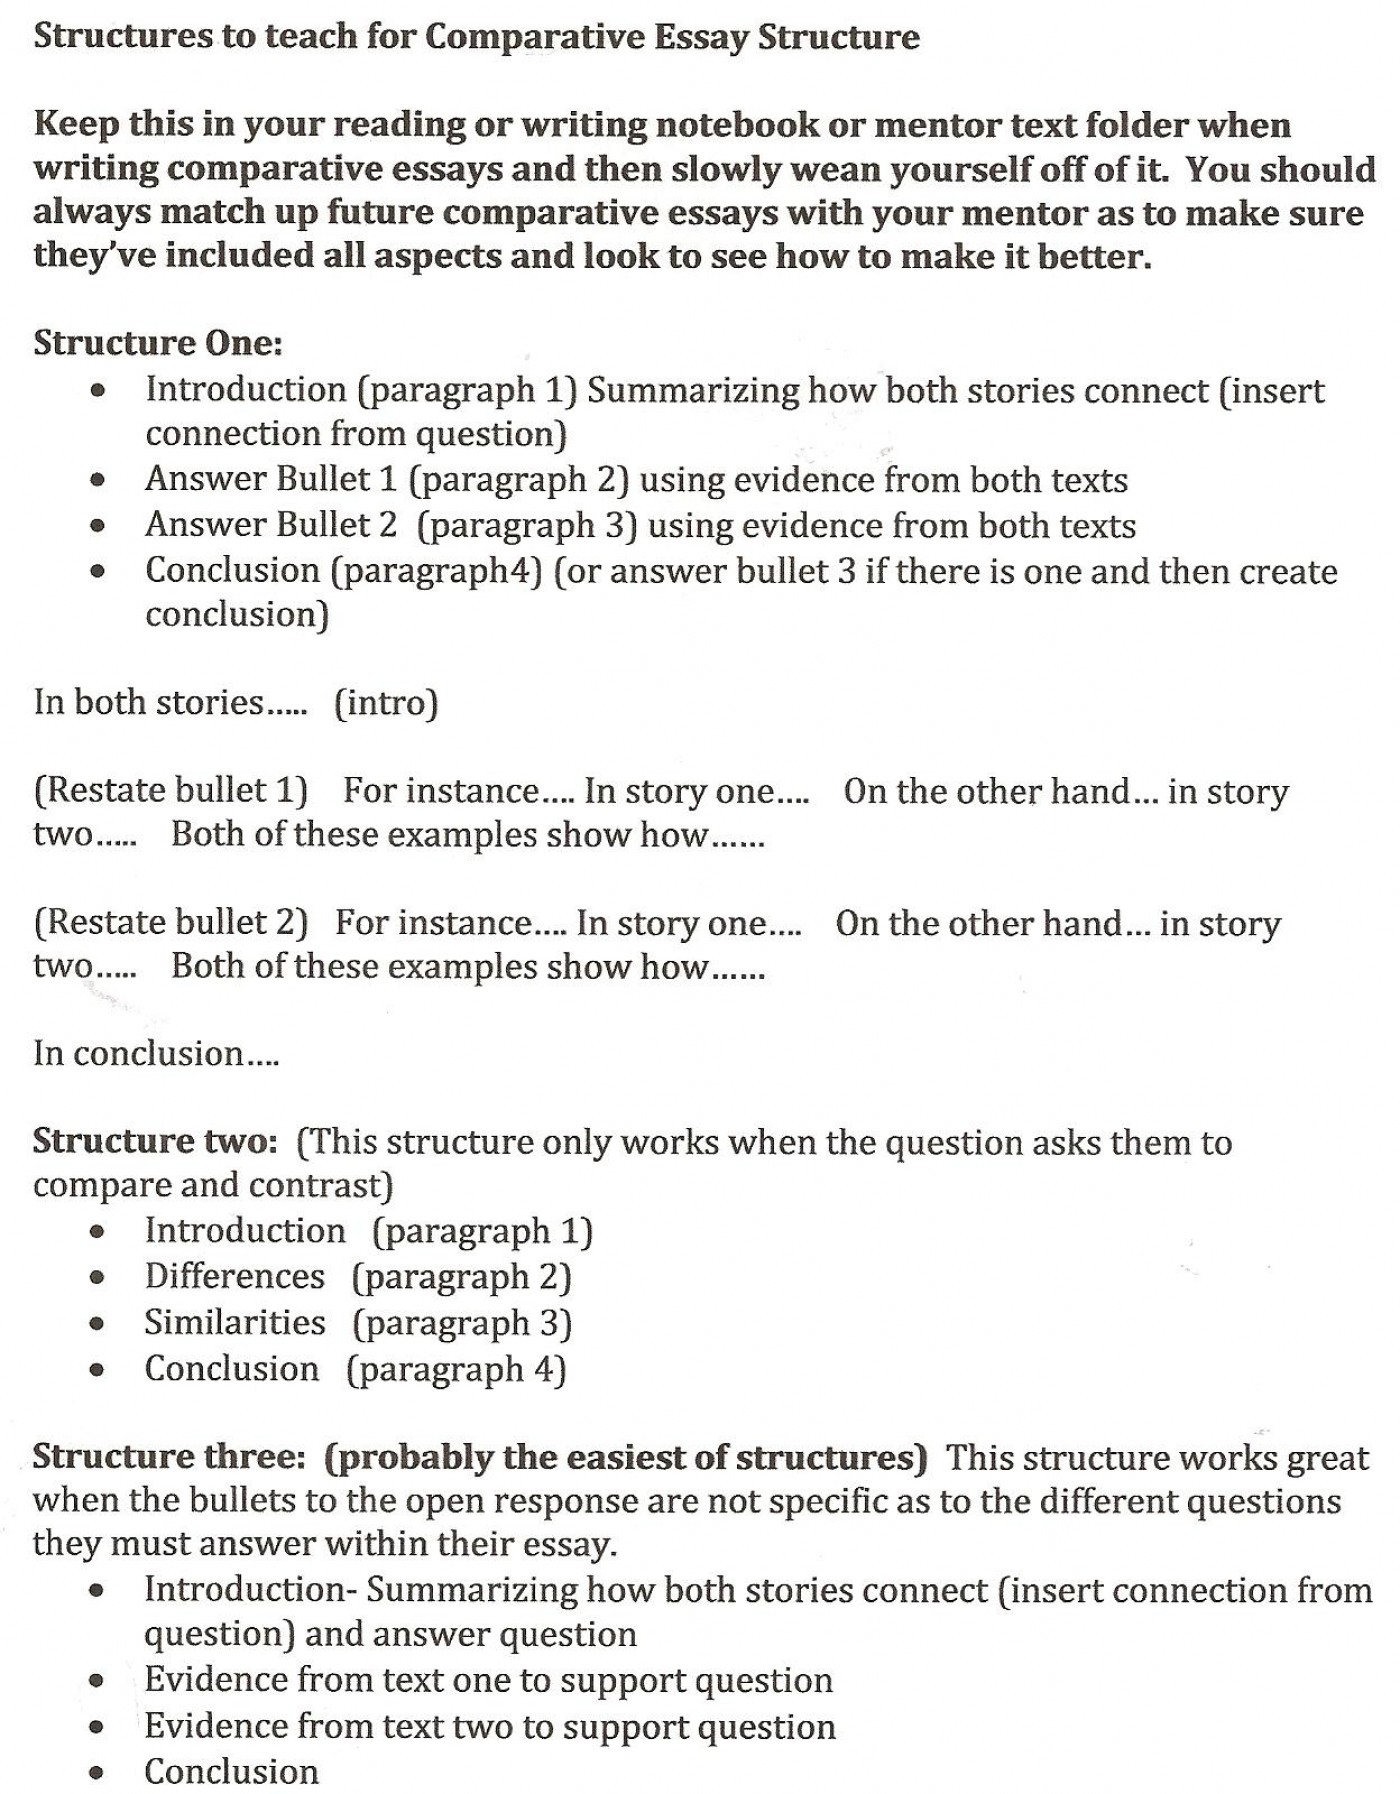 Compare and contrast batman and superman essay